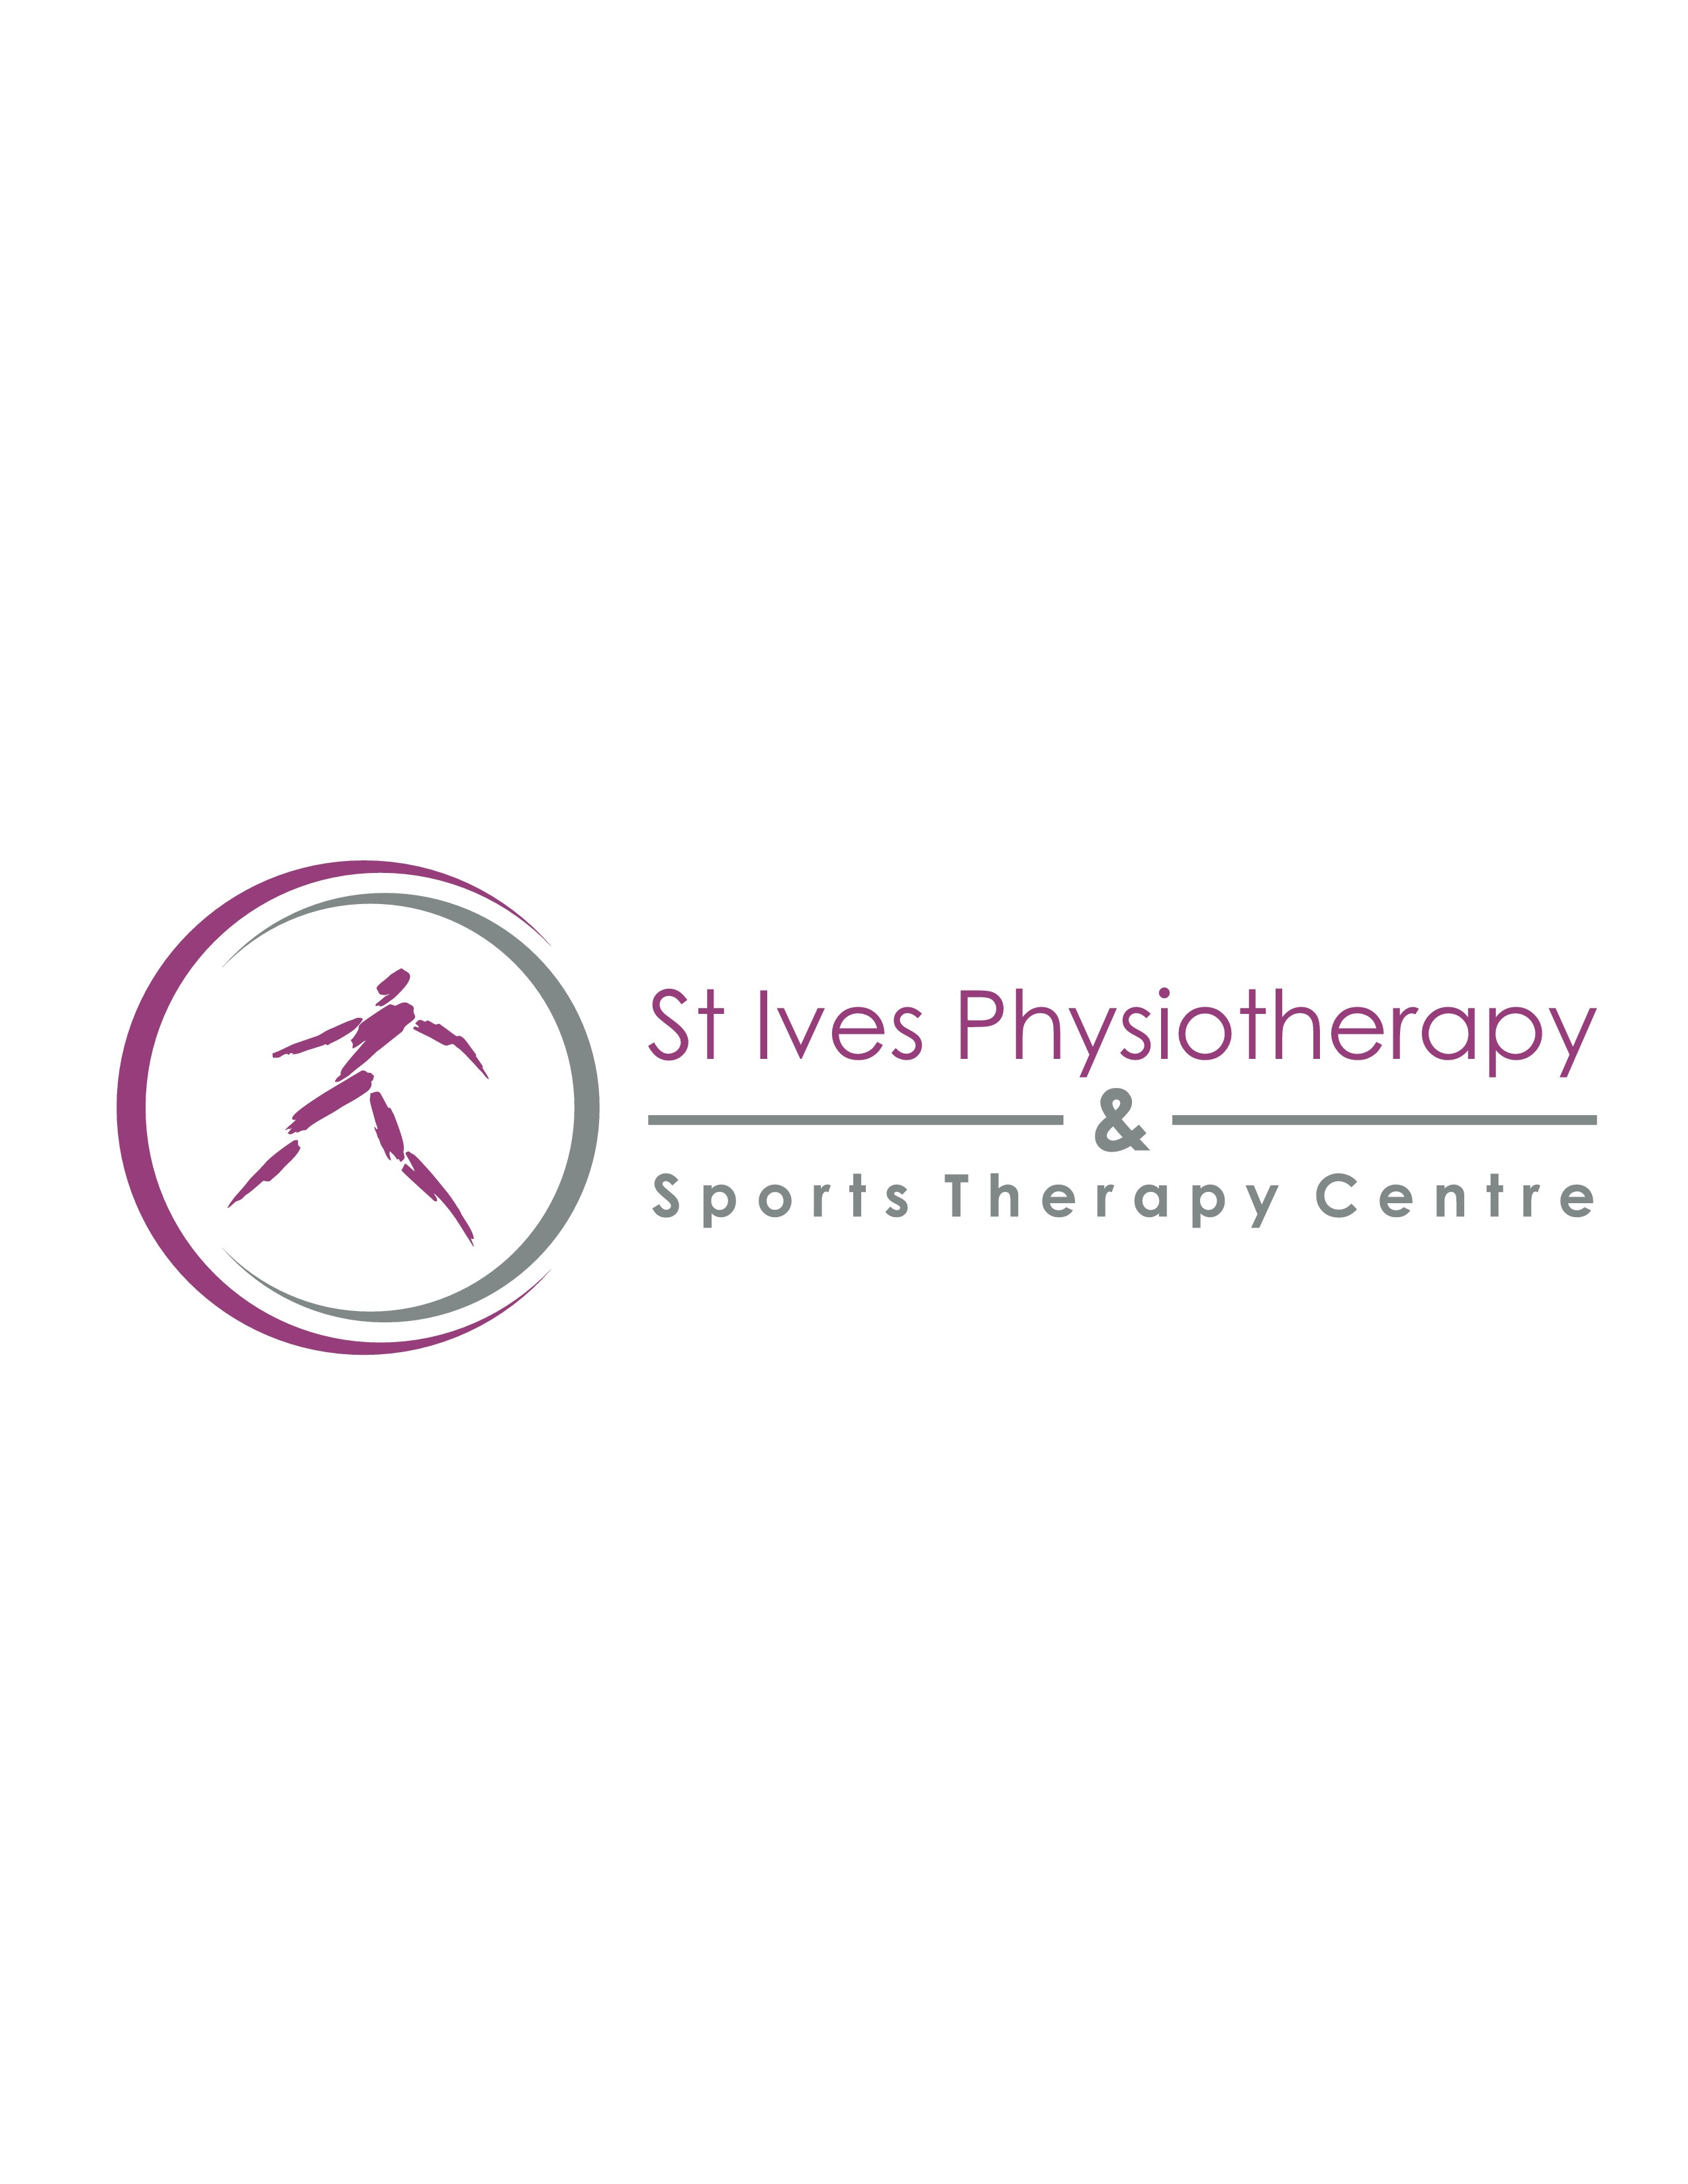 Create an empowering physiotherapy brand identity